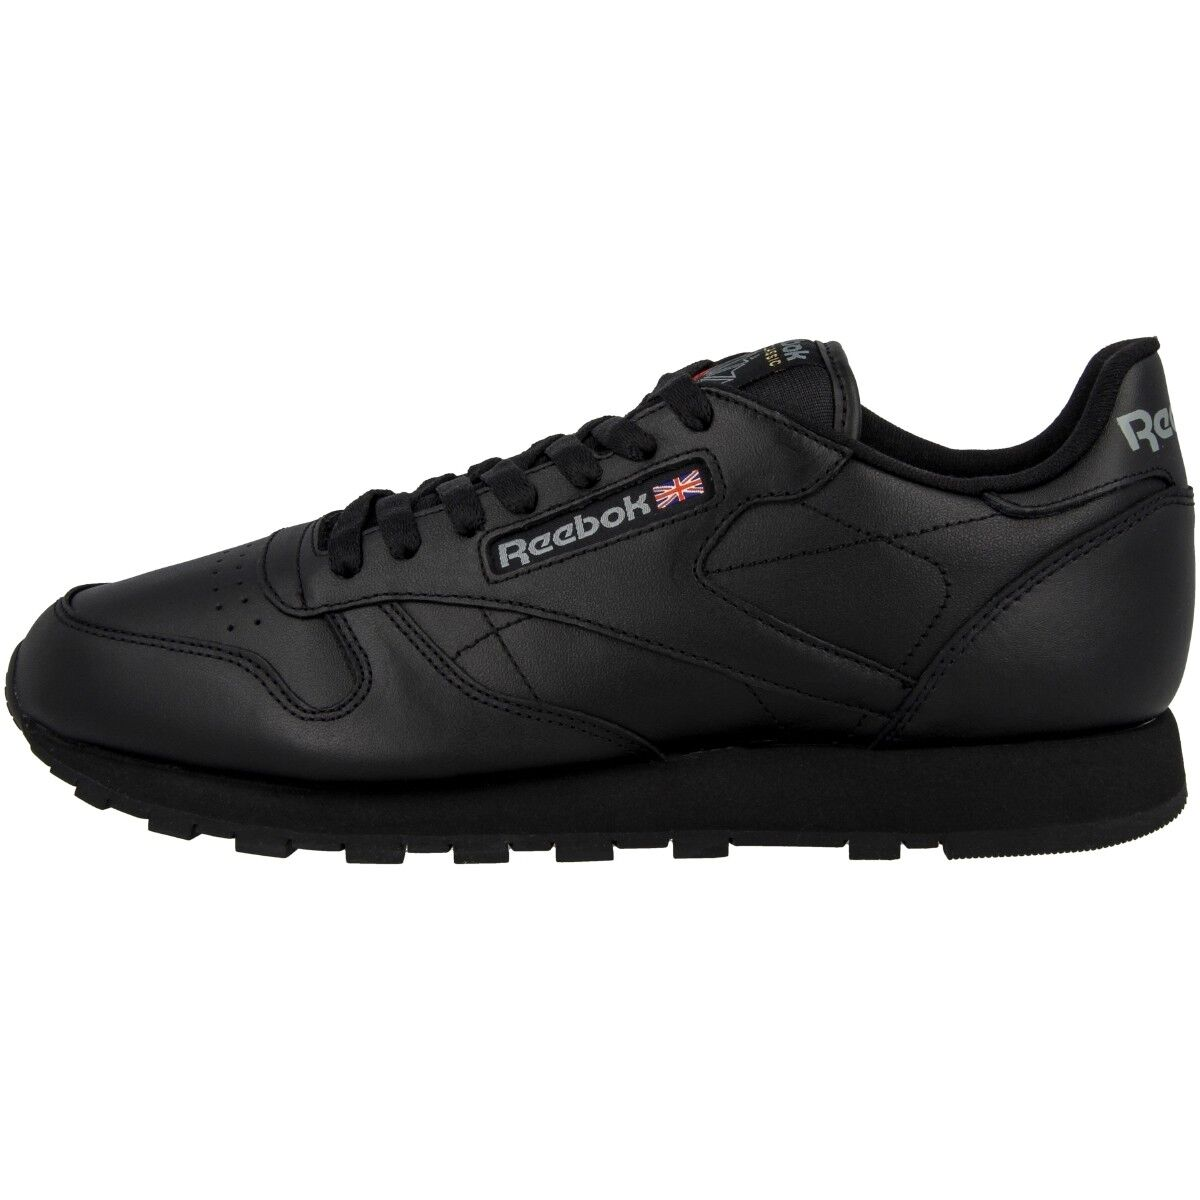 Reebok Classic Cuir Hommes Chaussures Chaussures Chaussures Basket Noir 2267 Sports et Loisirs 227bbe